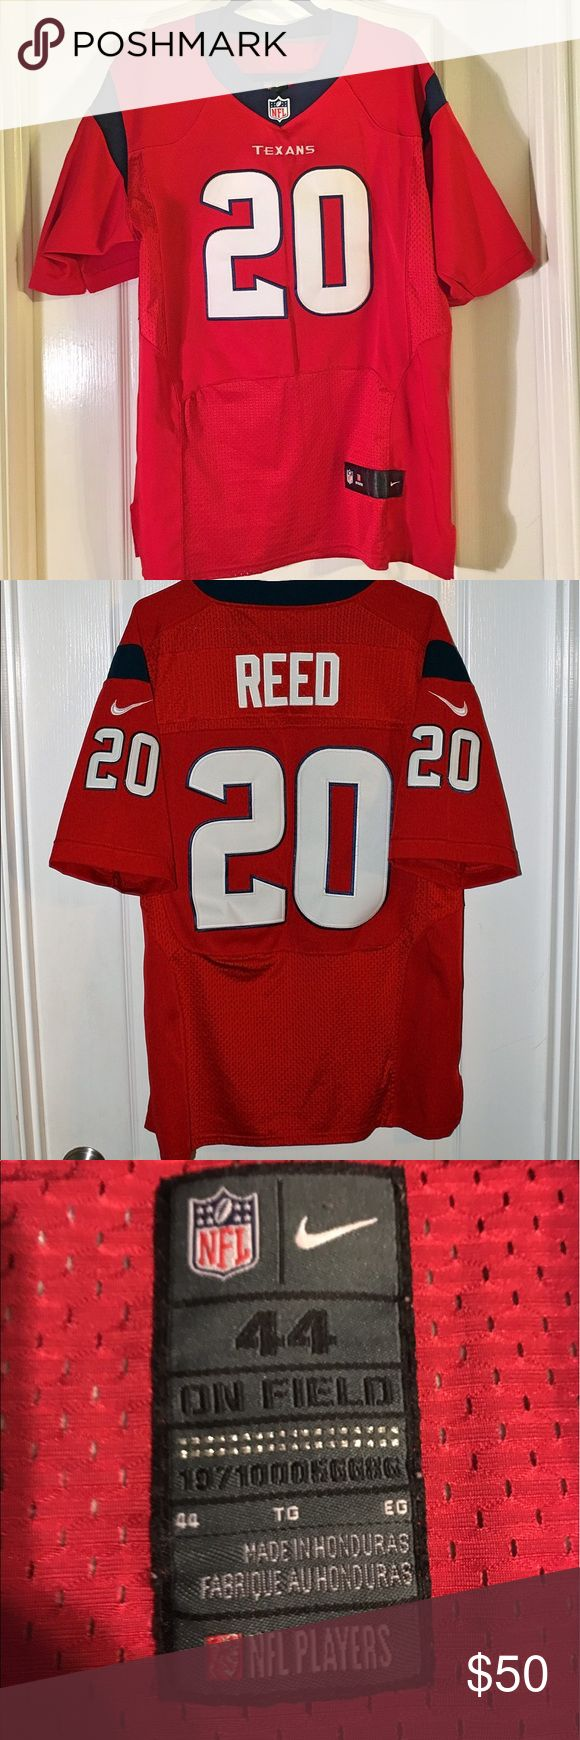 """Nike NFL Texans Ed Reed Jersey Nike NFL Texans Jersey ~ Ed Reed #20 ~ Size 44 ~ UA to UA is approximately 23"""" ~ Length is approximately 31"""" ~ Last two pictures show loose stitching on sleeve and back shoulder Nike Shirts"""